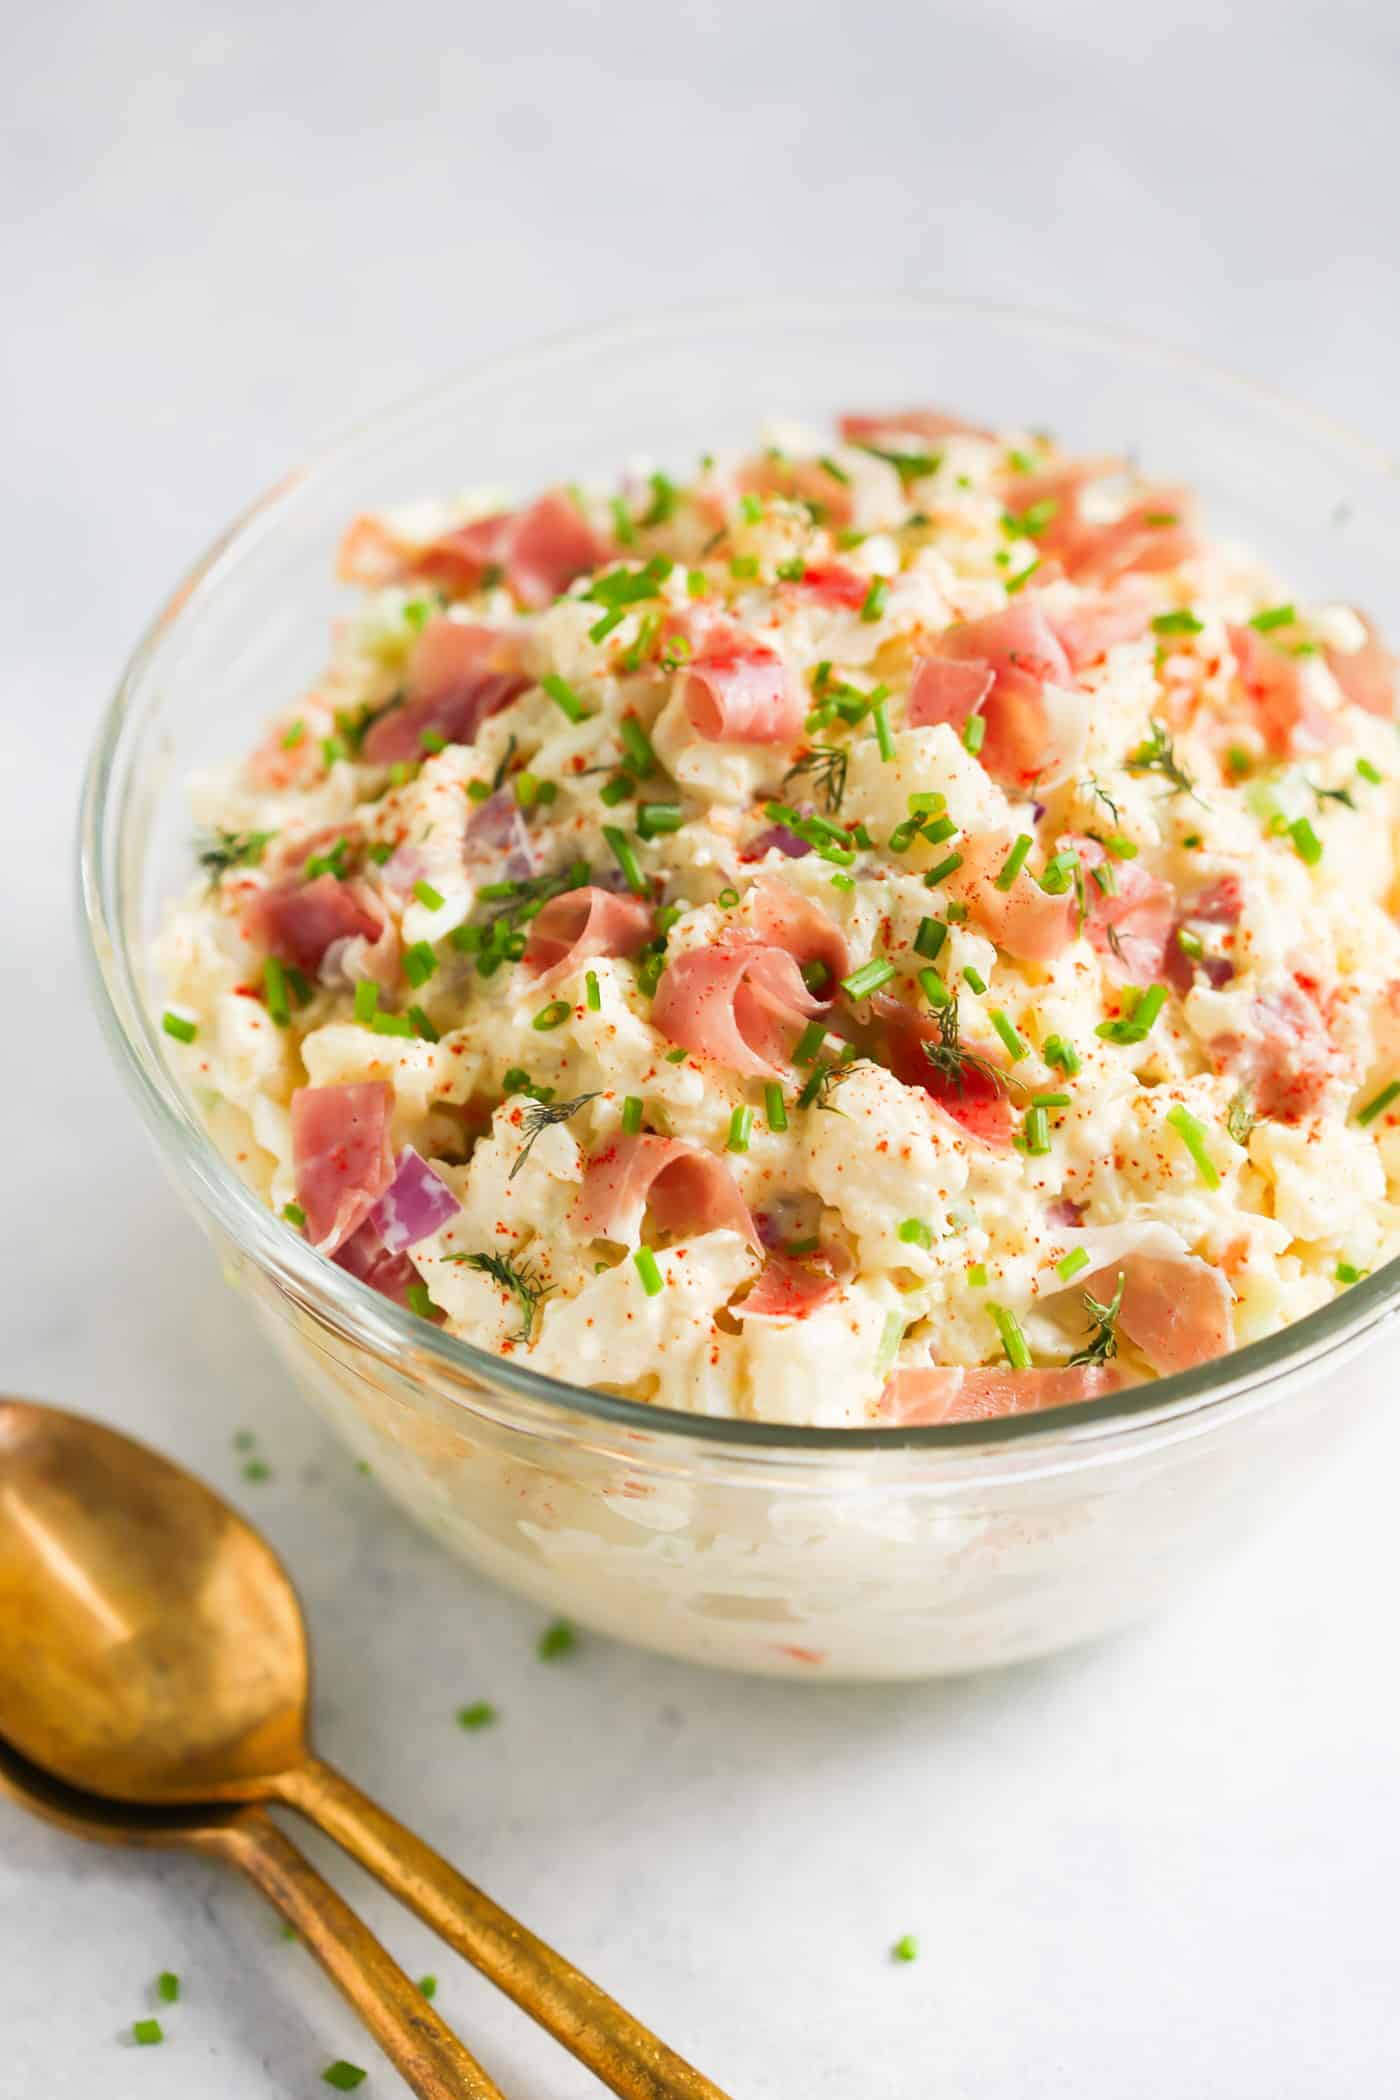 Cauliflower Potato Salad - Love Potato Salad, but hate all the carbs and calories that come with it? How about trying this Cauliflower Potato Salad? It has all the flavors of the traditional potato salad, but it has no potato and it's healthier!